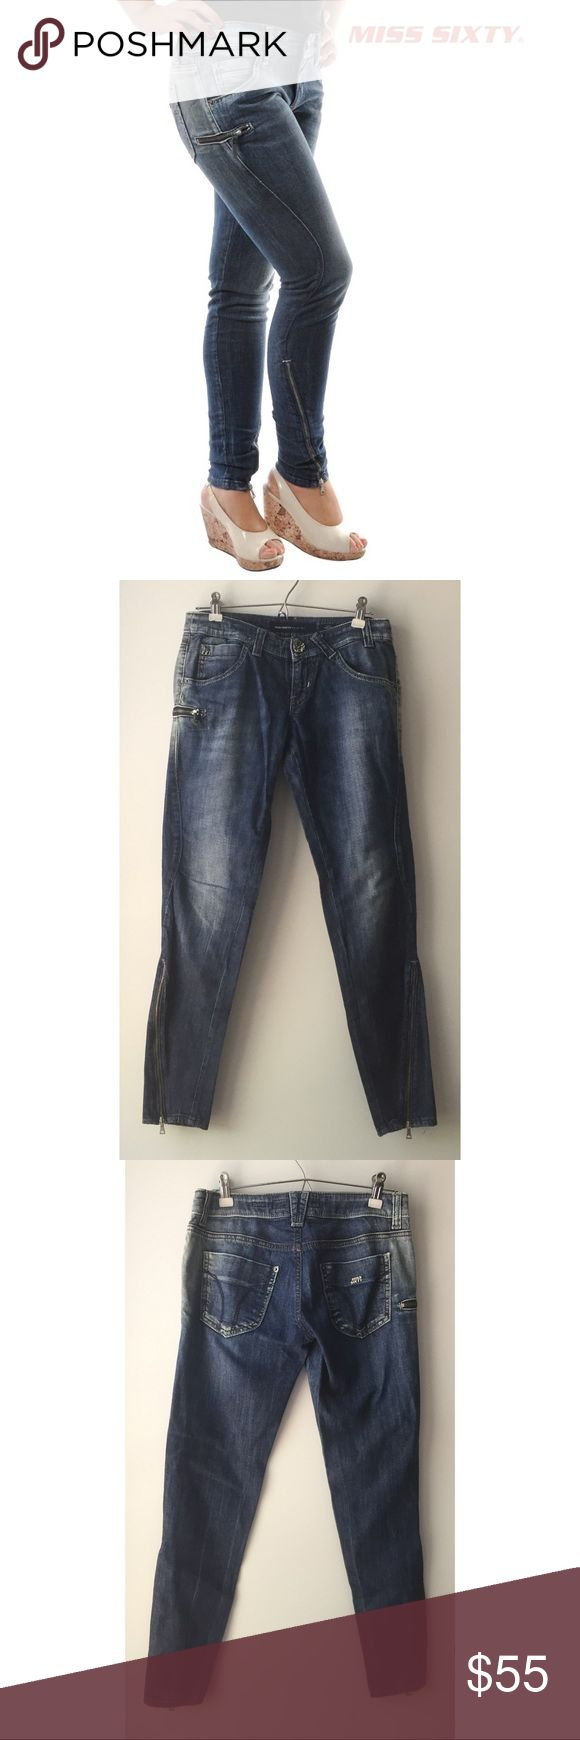 Miss Sixty | dalko style jeans Super trendy 'dalko' style Miss Sixty jeans. Zipper closure at the ankles. Extra zipper pocket on right side. Size 27. Miss Sixty Jeans